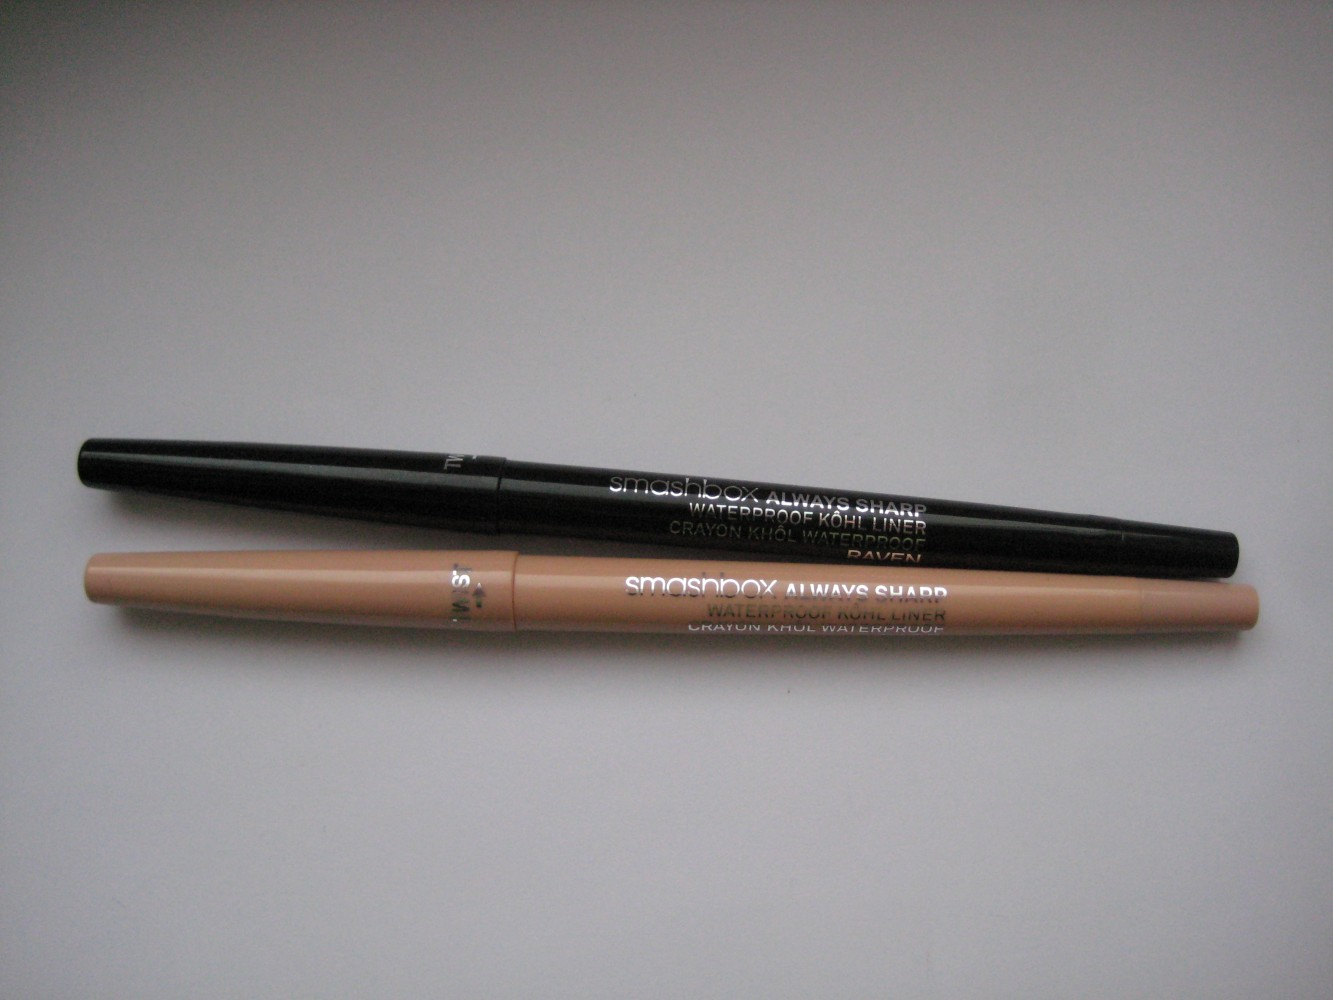 Водостойкие карандаш для век Smashbox Always Sharp Waterproof Kohl Liner SMASHBOX ALWAYS SHARP WATERPROOF KOHL LINER оттенок Bare и оттенок Rave